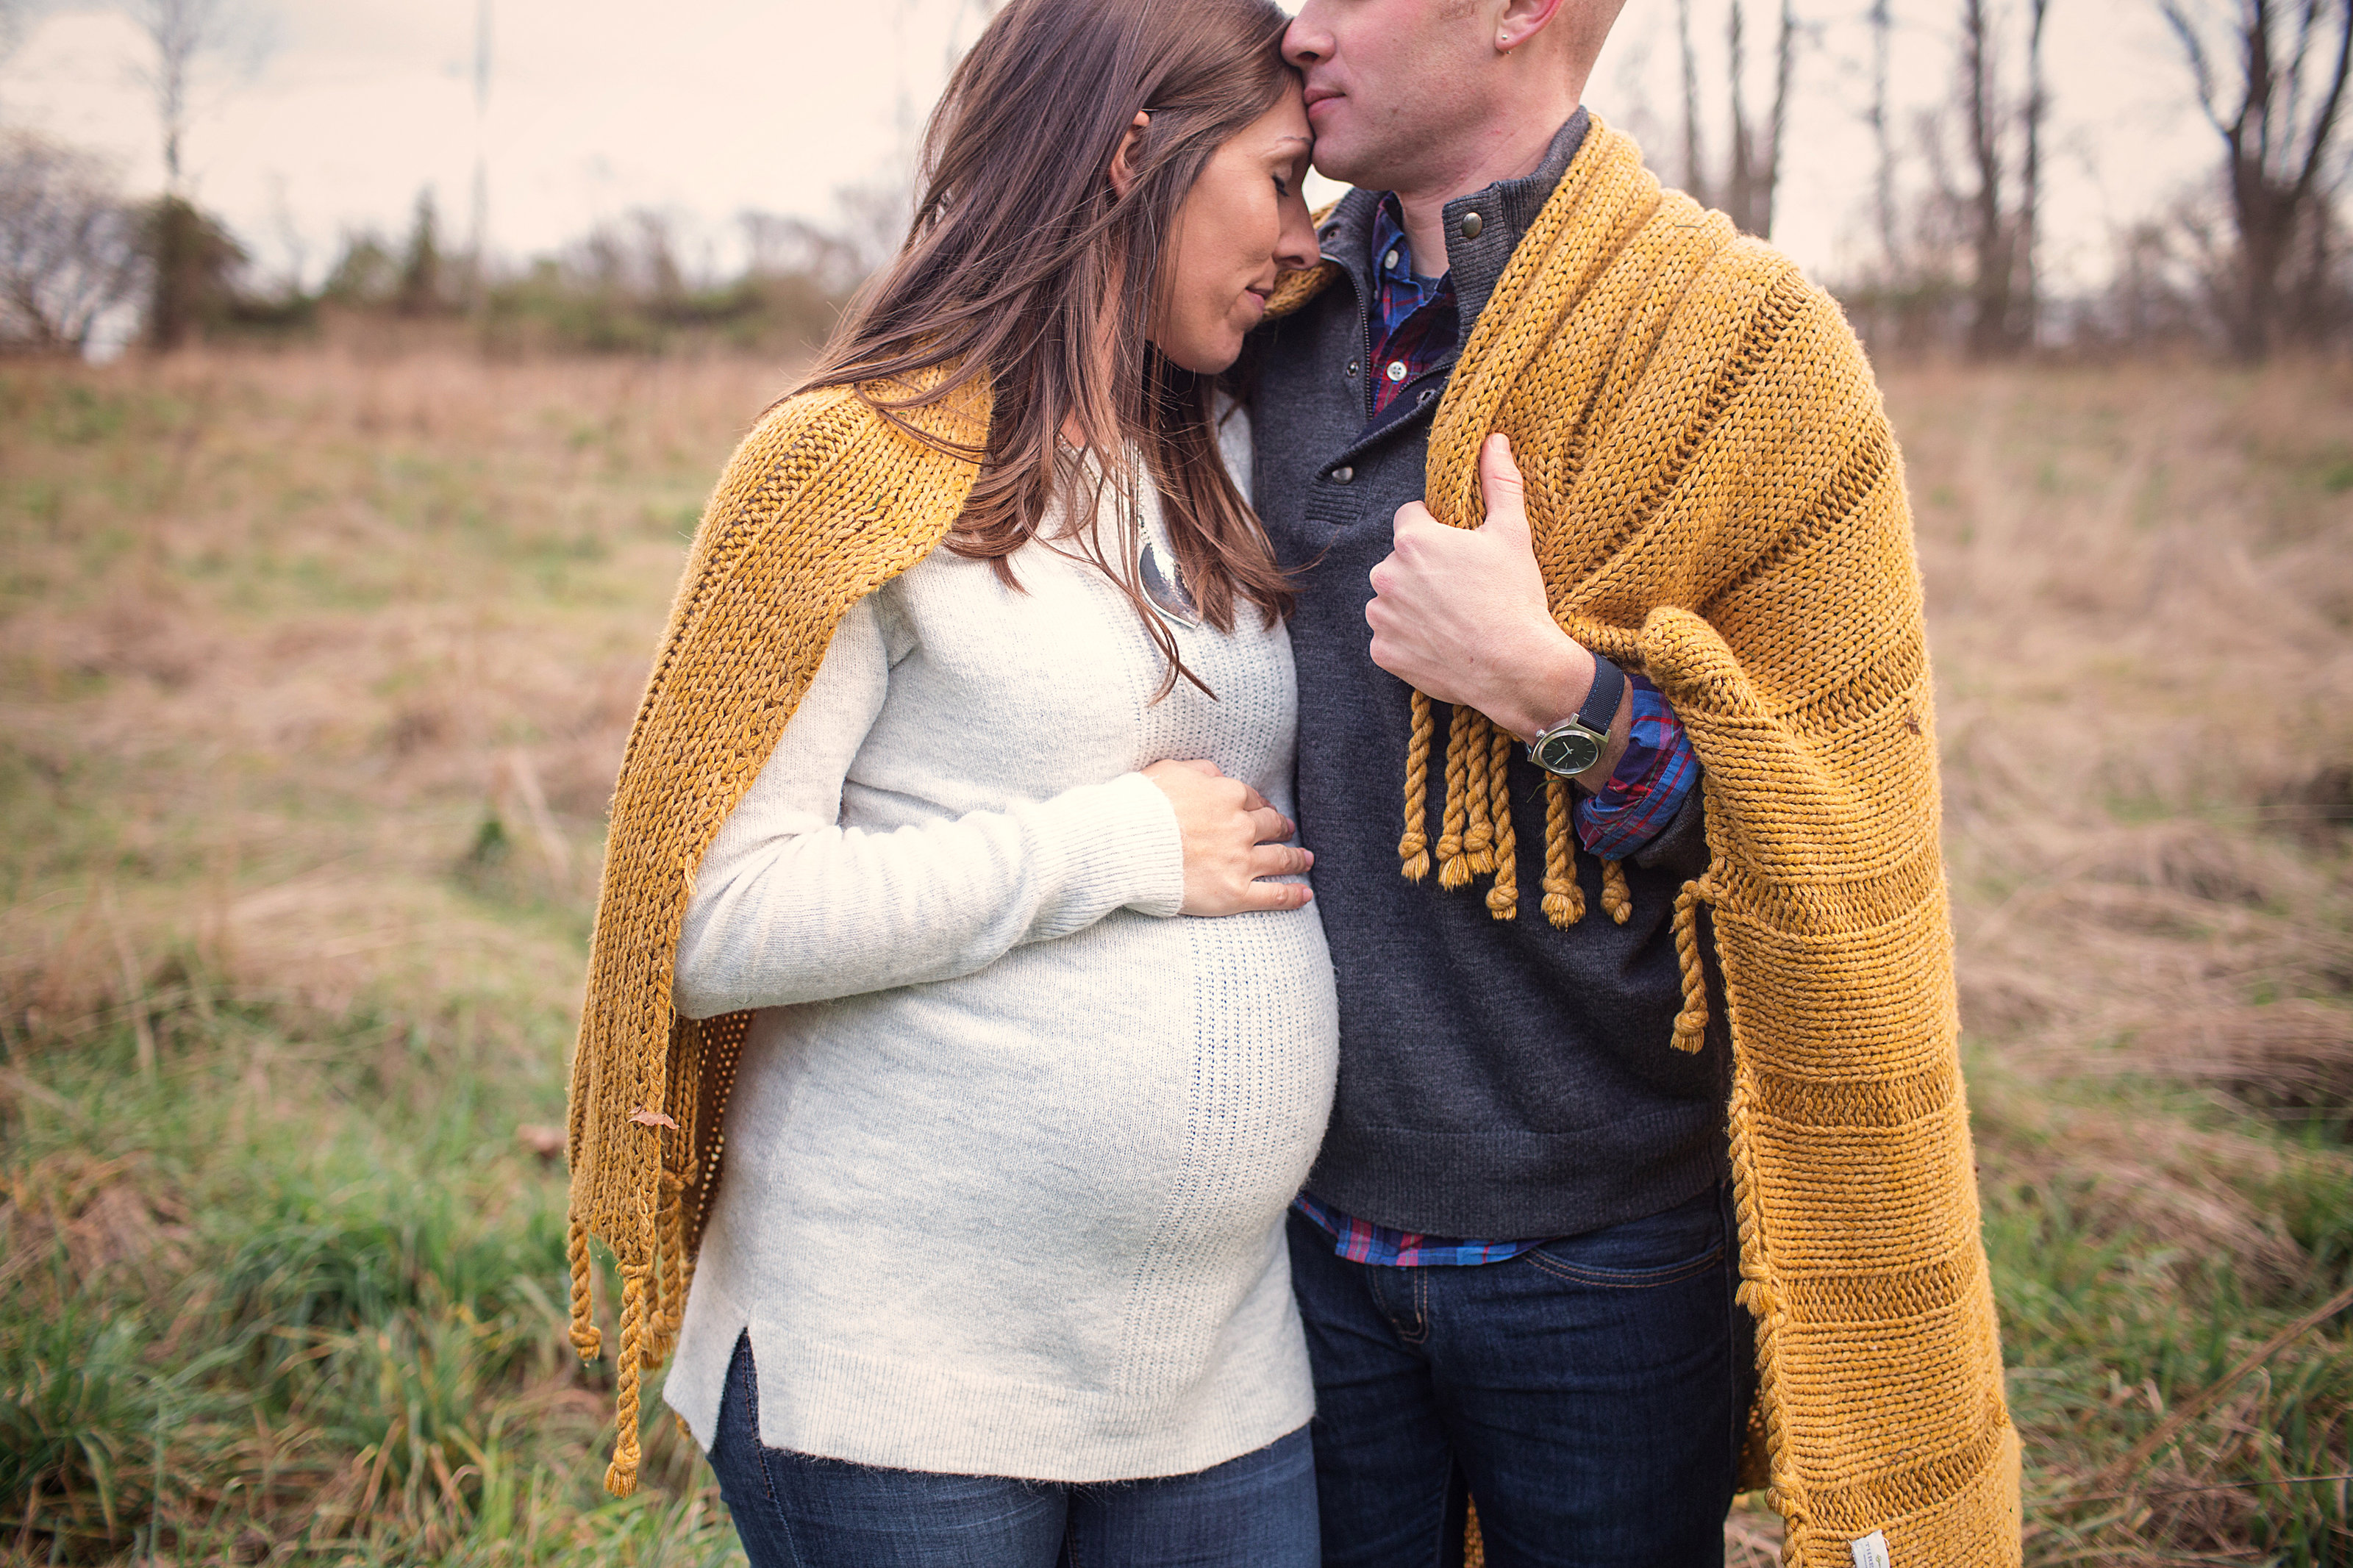 PA maternity couple wrapped in blanket photo at Lititz homestead